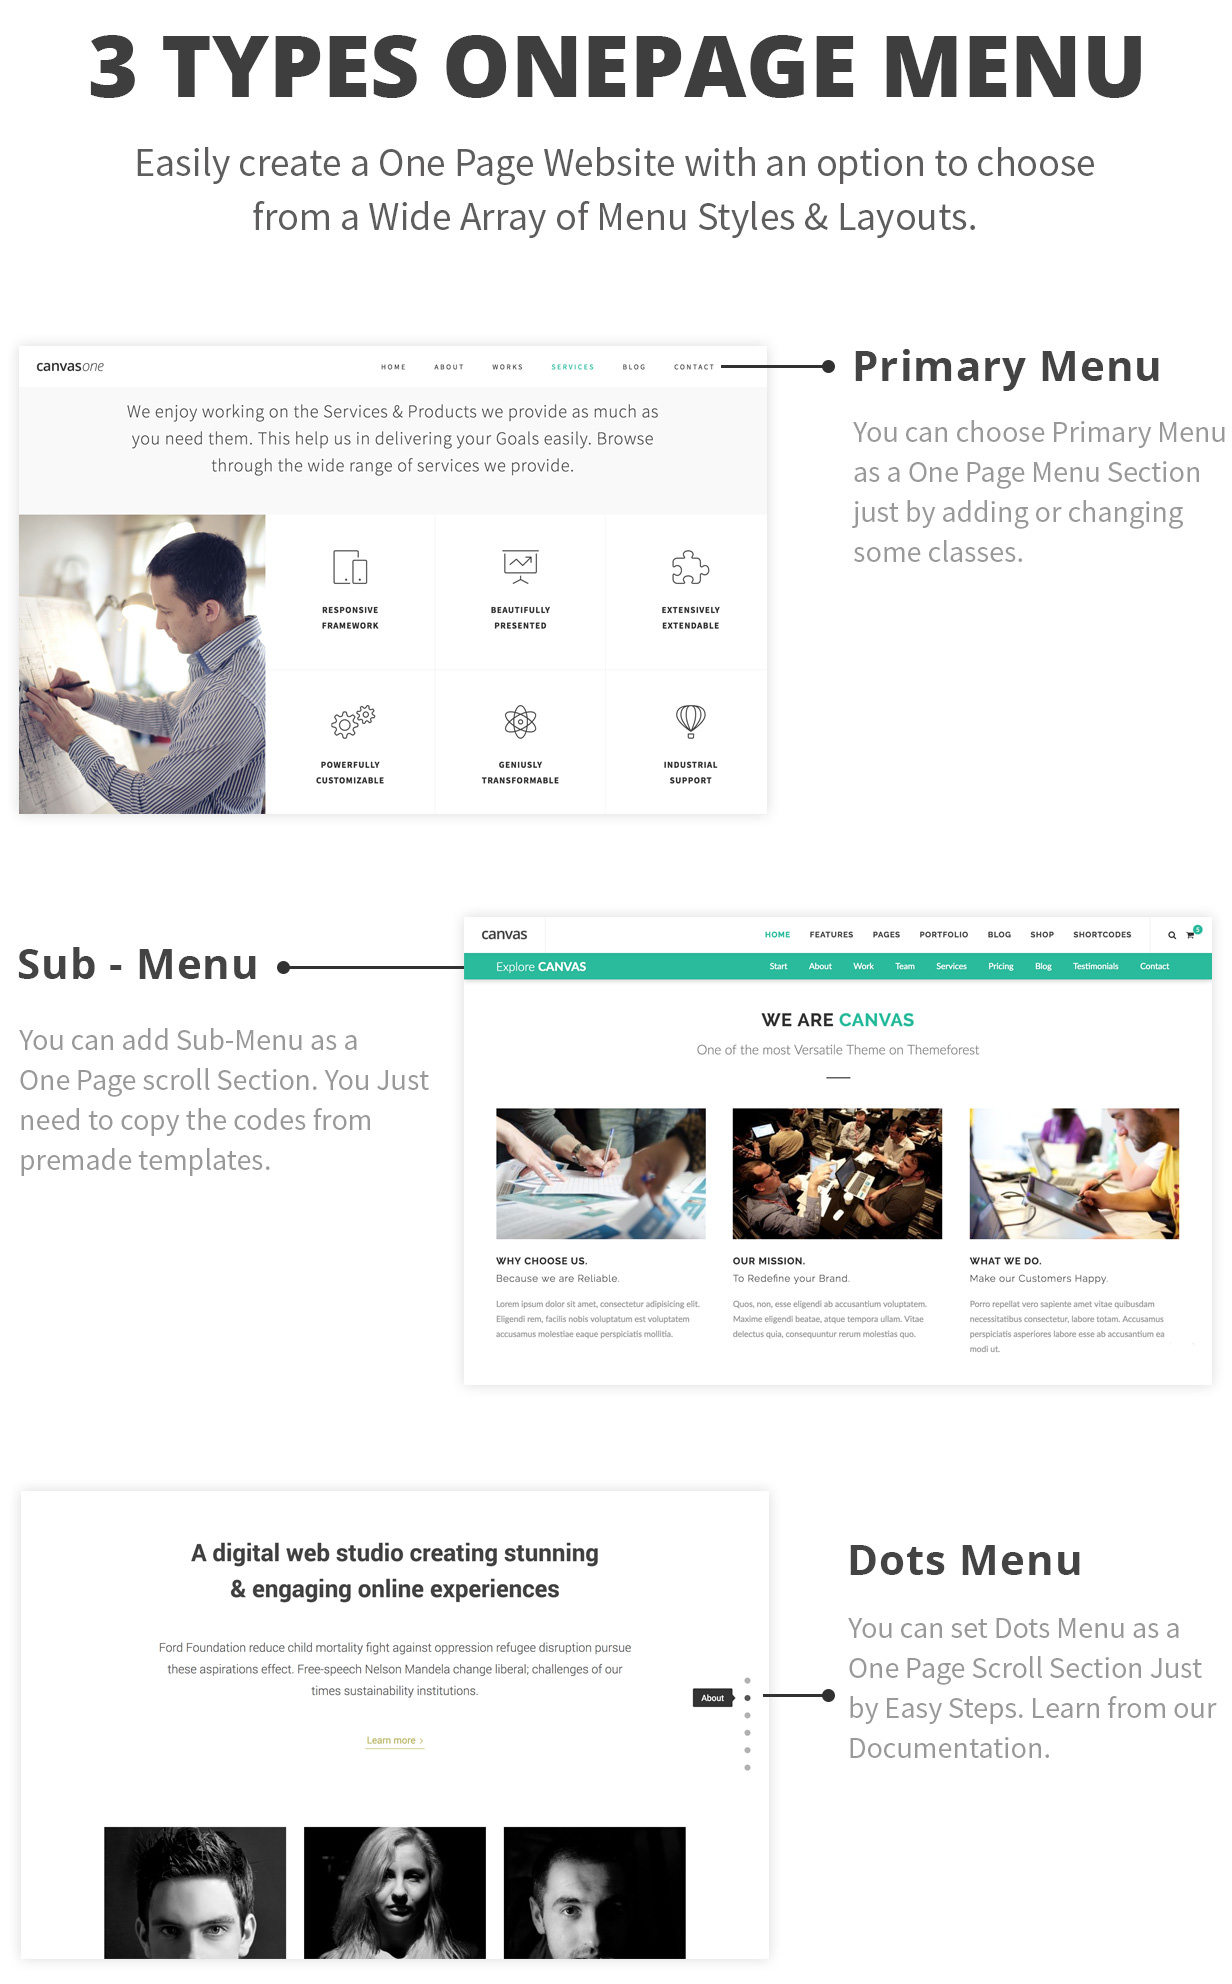 one page options - Canvas | The Multi-Purpose HTML5 Template